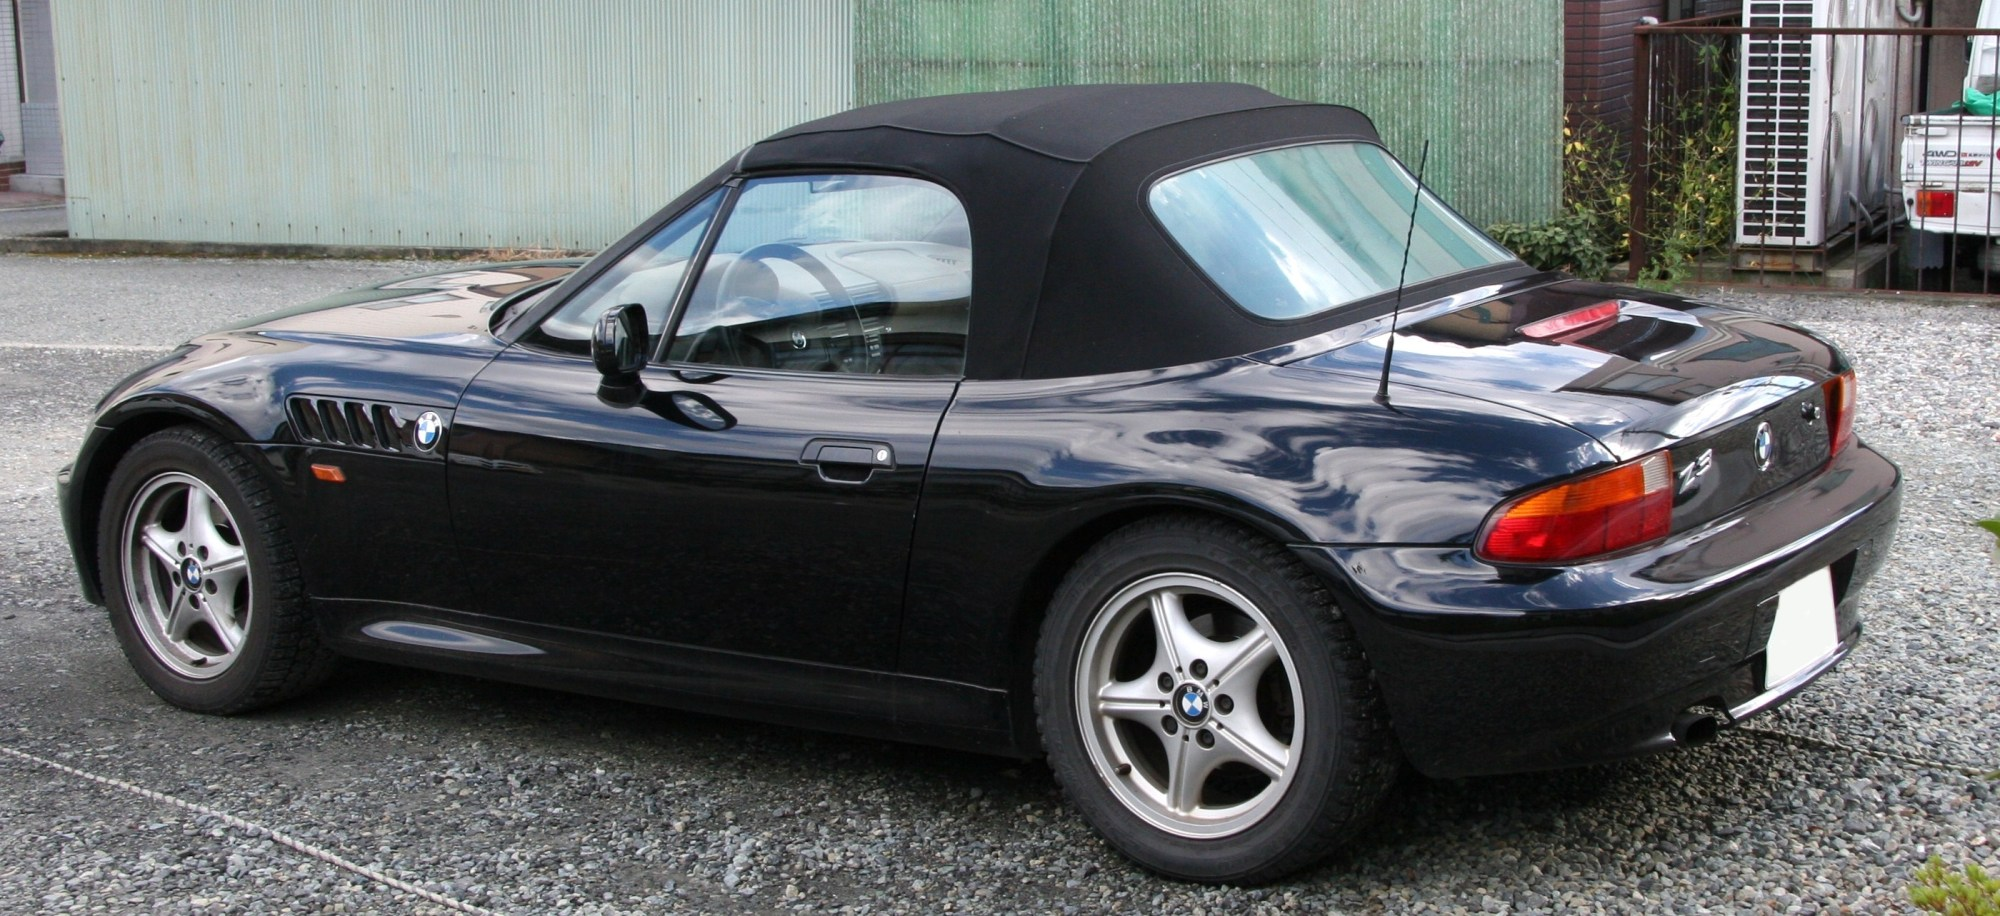 hight resolution of bmw z3 roadster 1998 pics 2